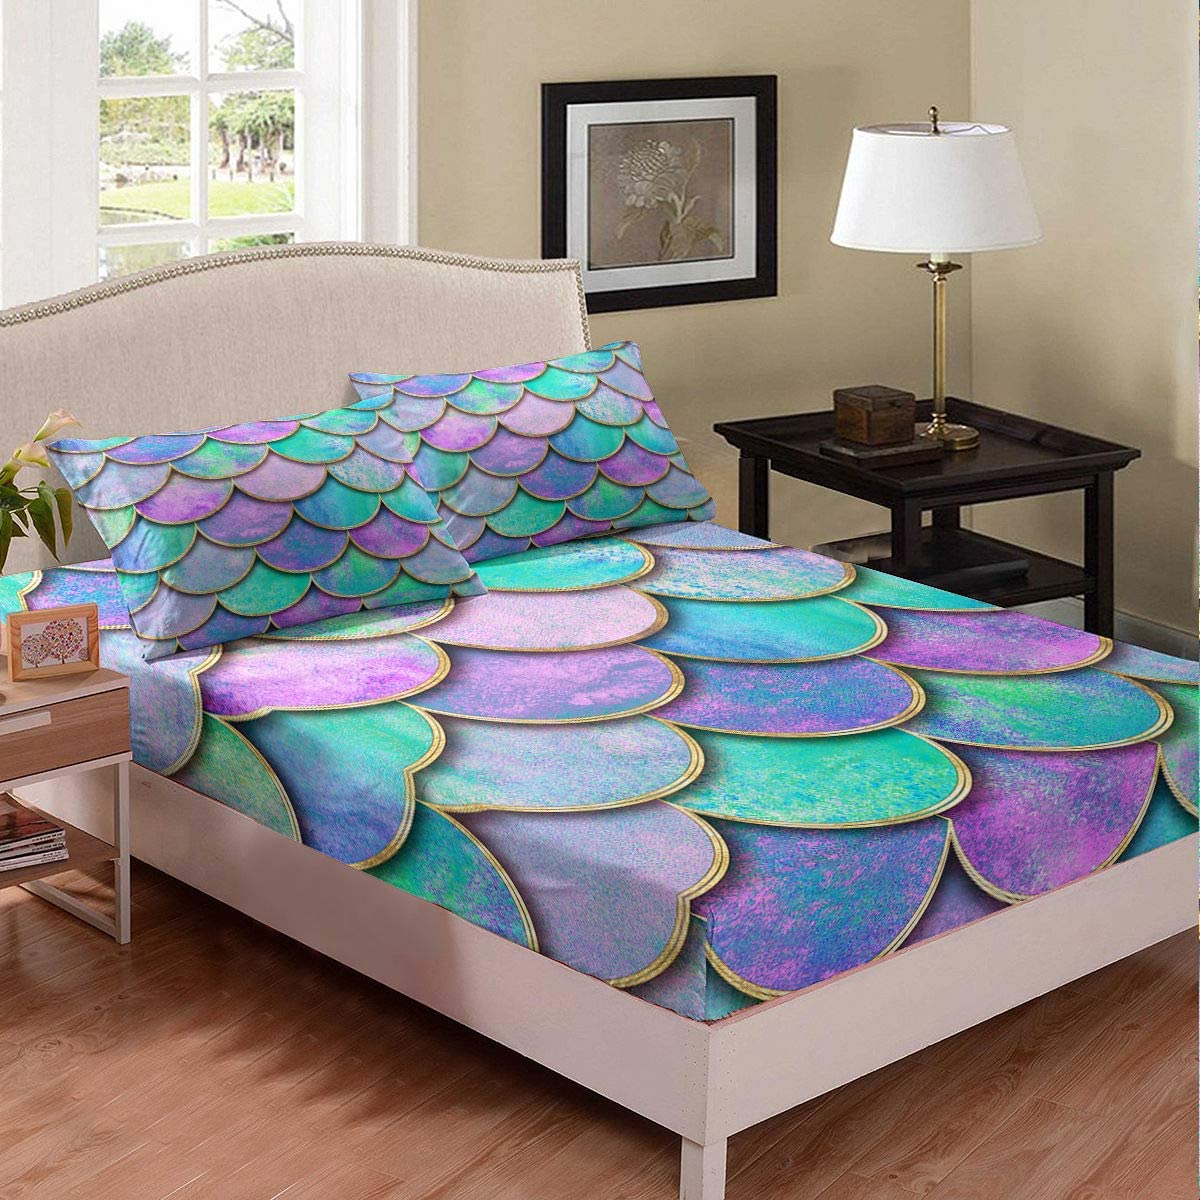 Mermaid Fish Scales Fitted Sheet Twin Size Pink Purple Teal Bedding for Girls Teens Luxury Watercolor Soft Microfiber Kids Room Decor Sheet Set with 1 Pillow Sham, Zipper, Geometric,Blue Golden